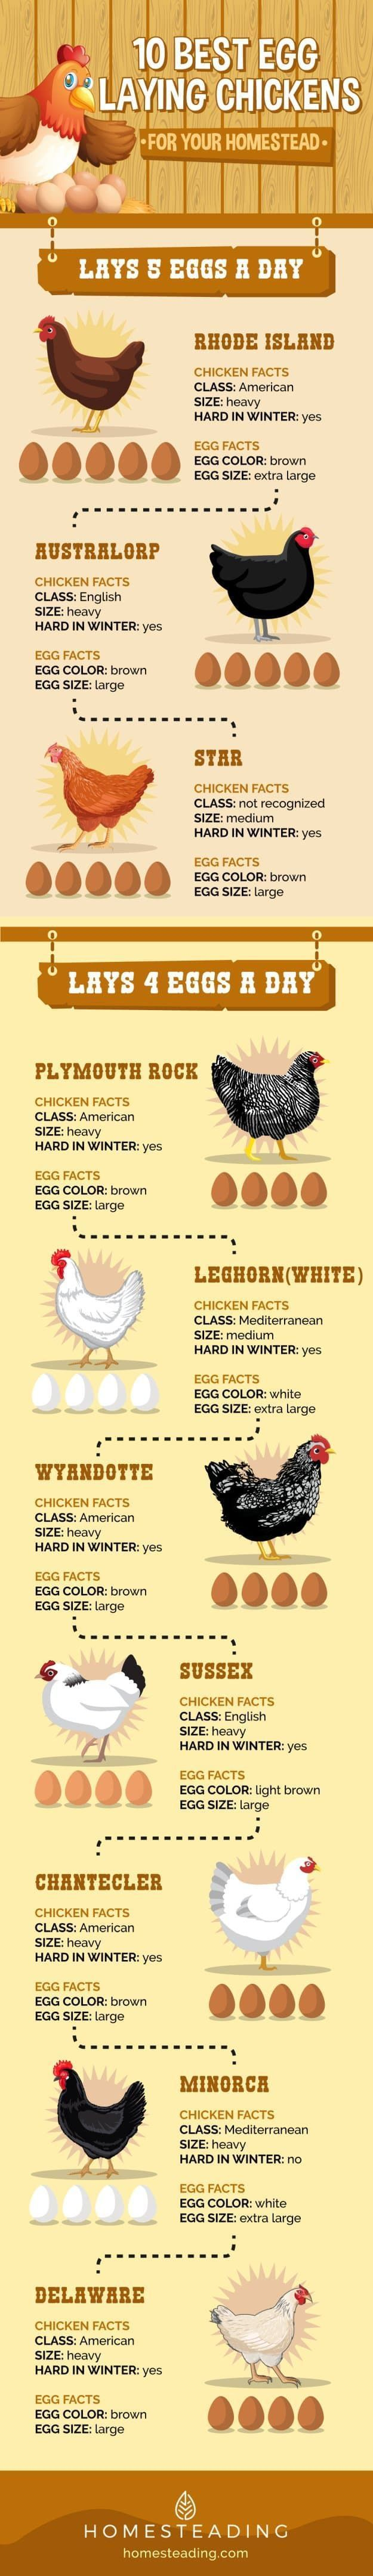 If you plan to raise chicken for eggs, this list will help you find out the best egg laying chickens to raise in your homestead.